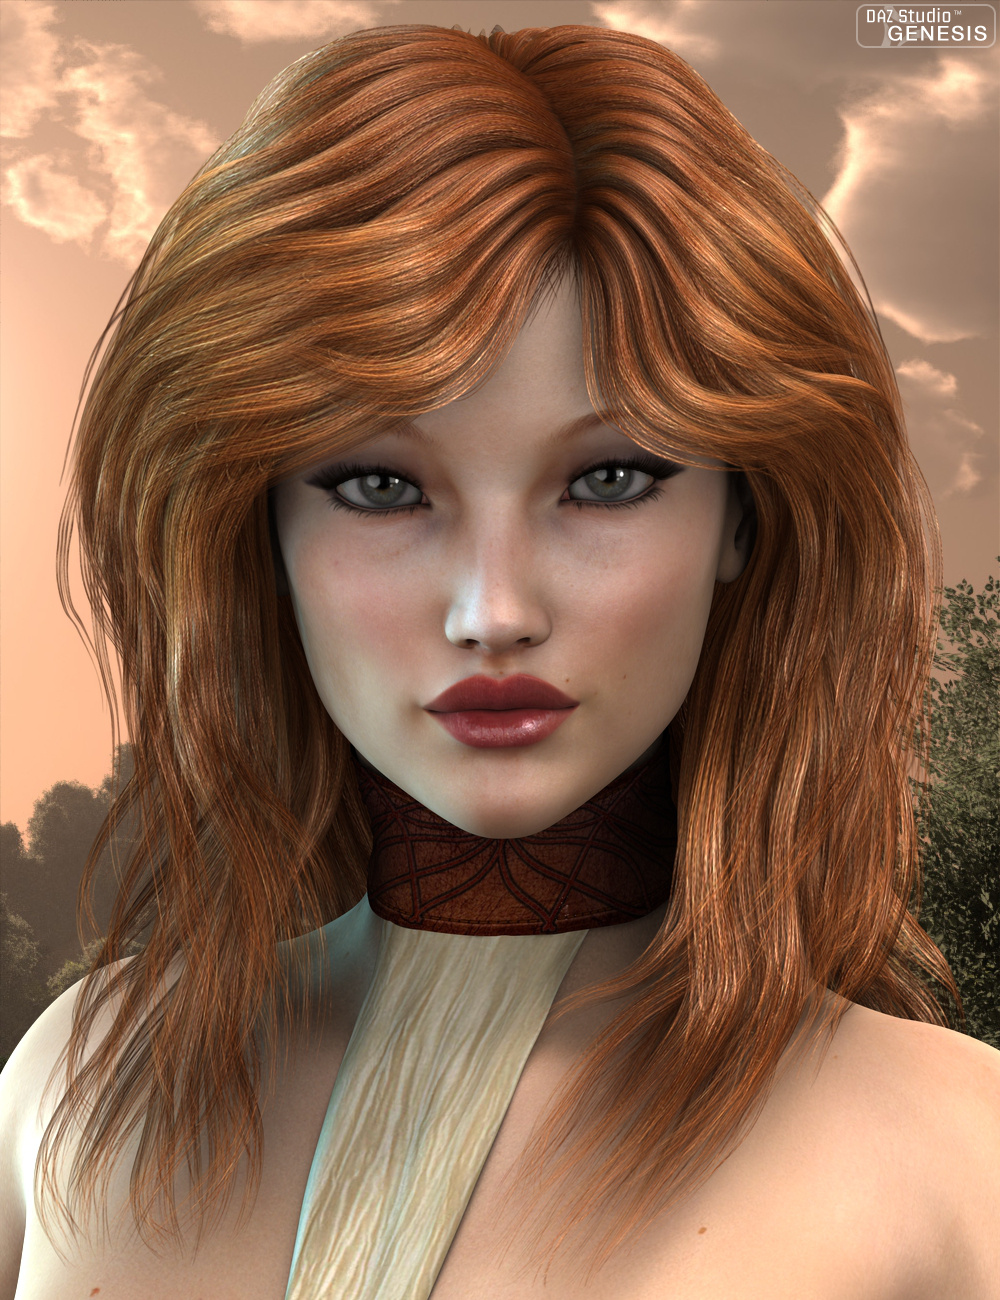 Marja Hair by: 3DreamMairy, 3D Models by Daz 3D